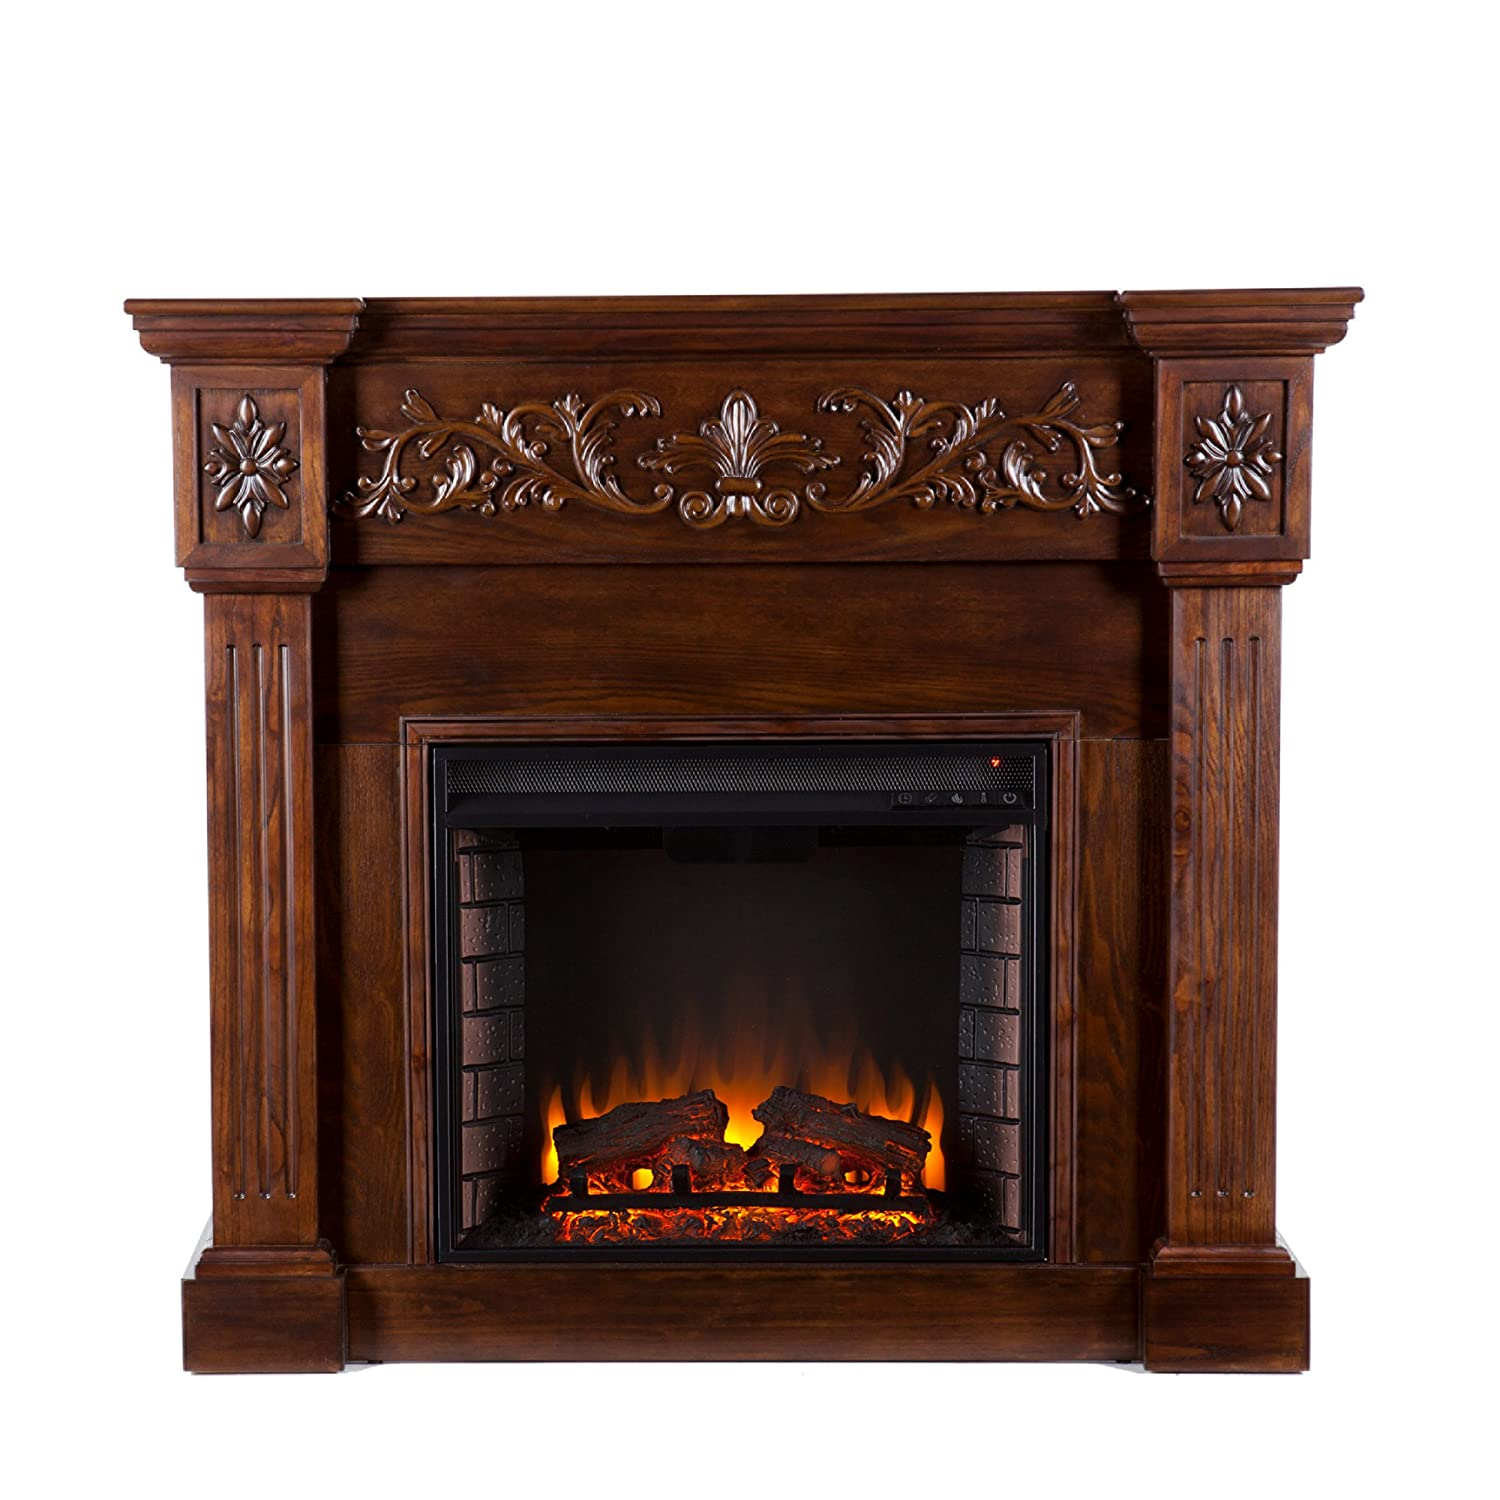 Calvert Carved Electric Fireplace - Espresso, Also In Ivort